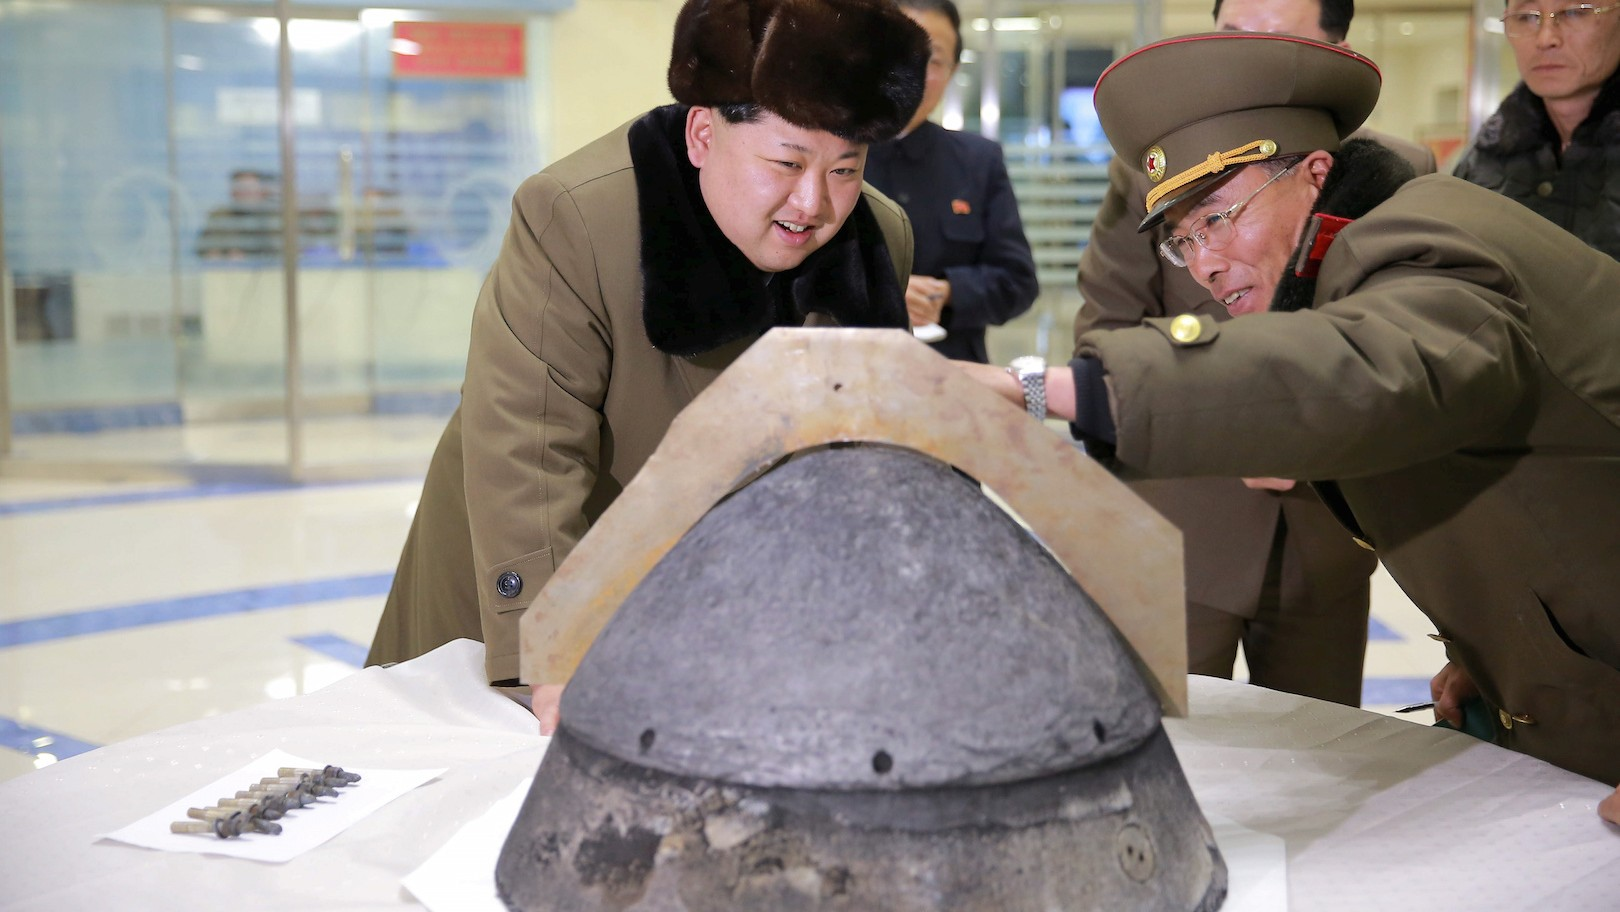 North Korea is figuring out how to launch ballistic missiles